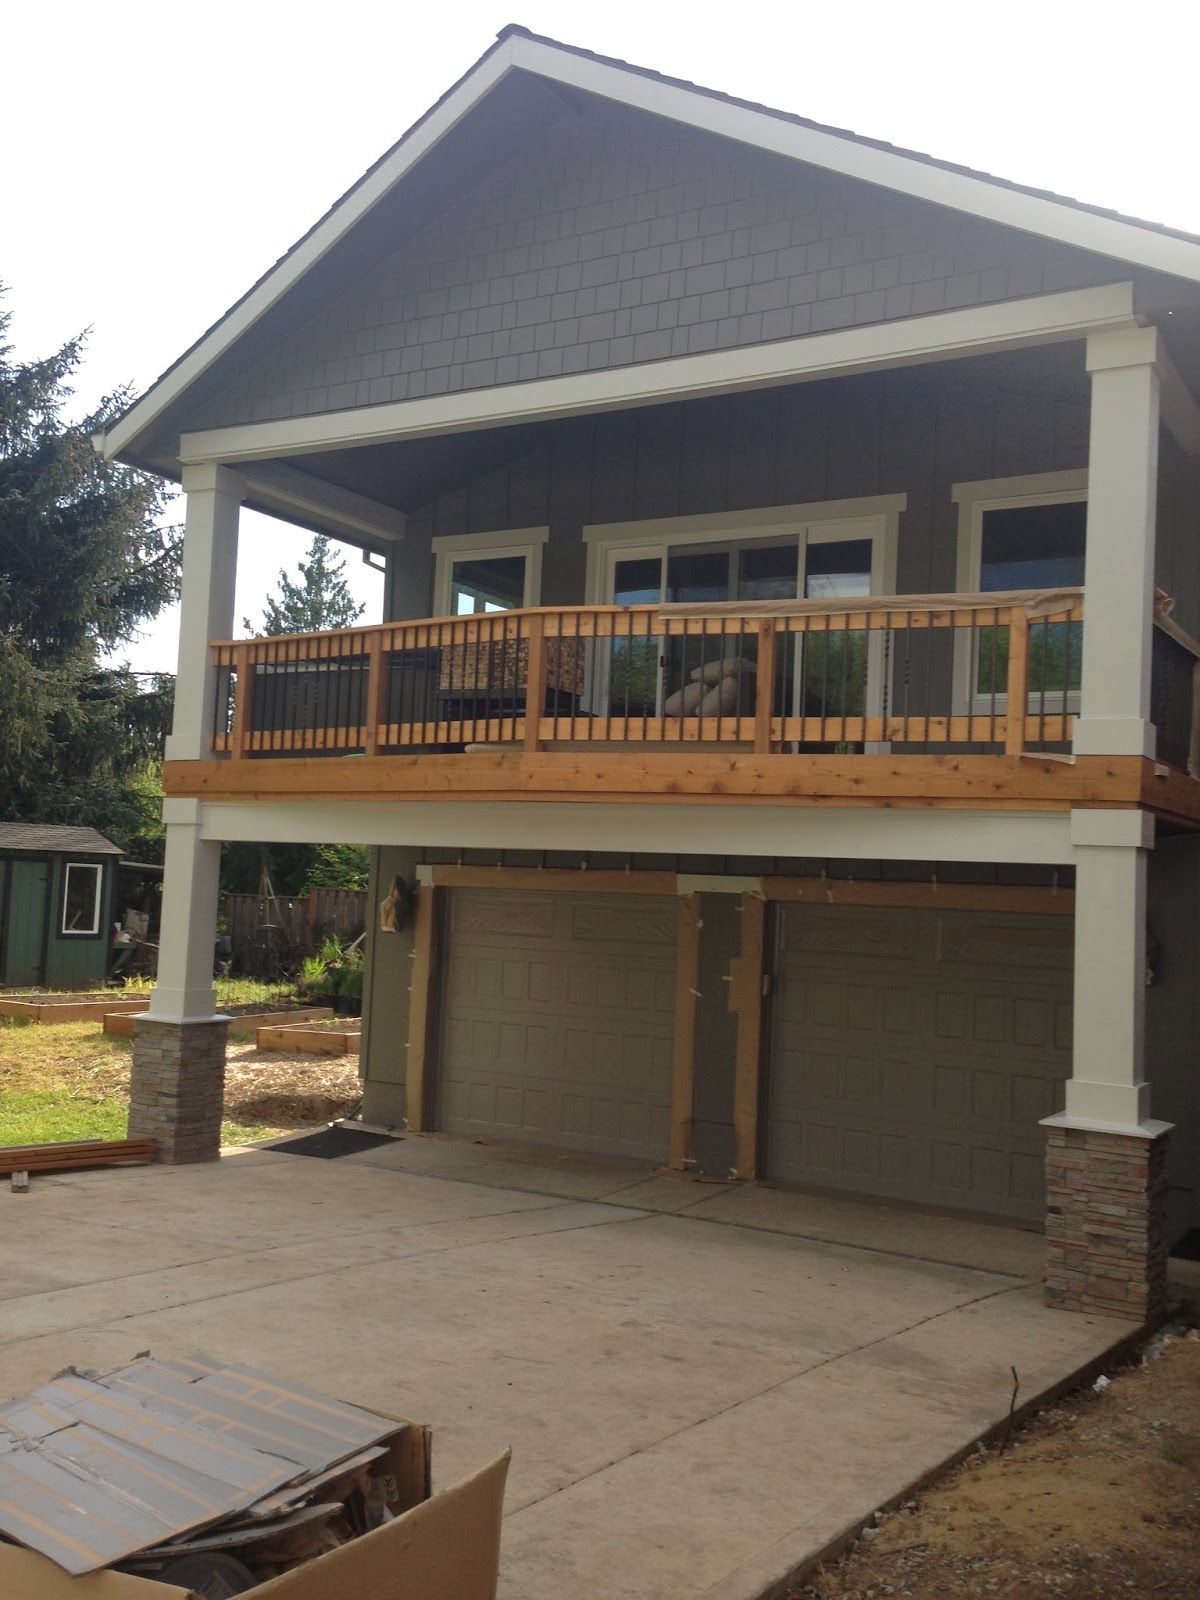 Extend The Deck Over Garage For Extra Covered Parking Turn Sunroom Into Master